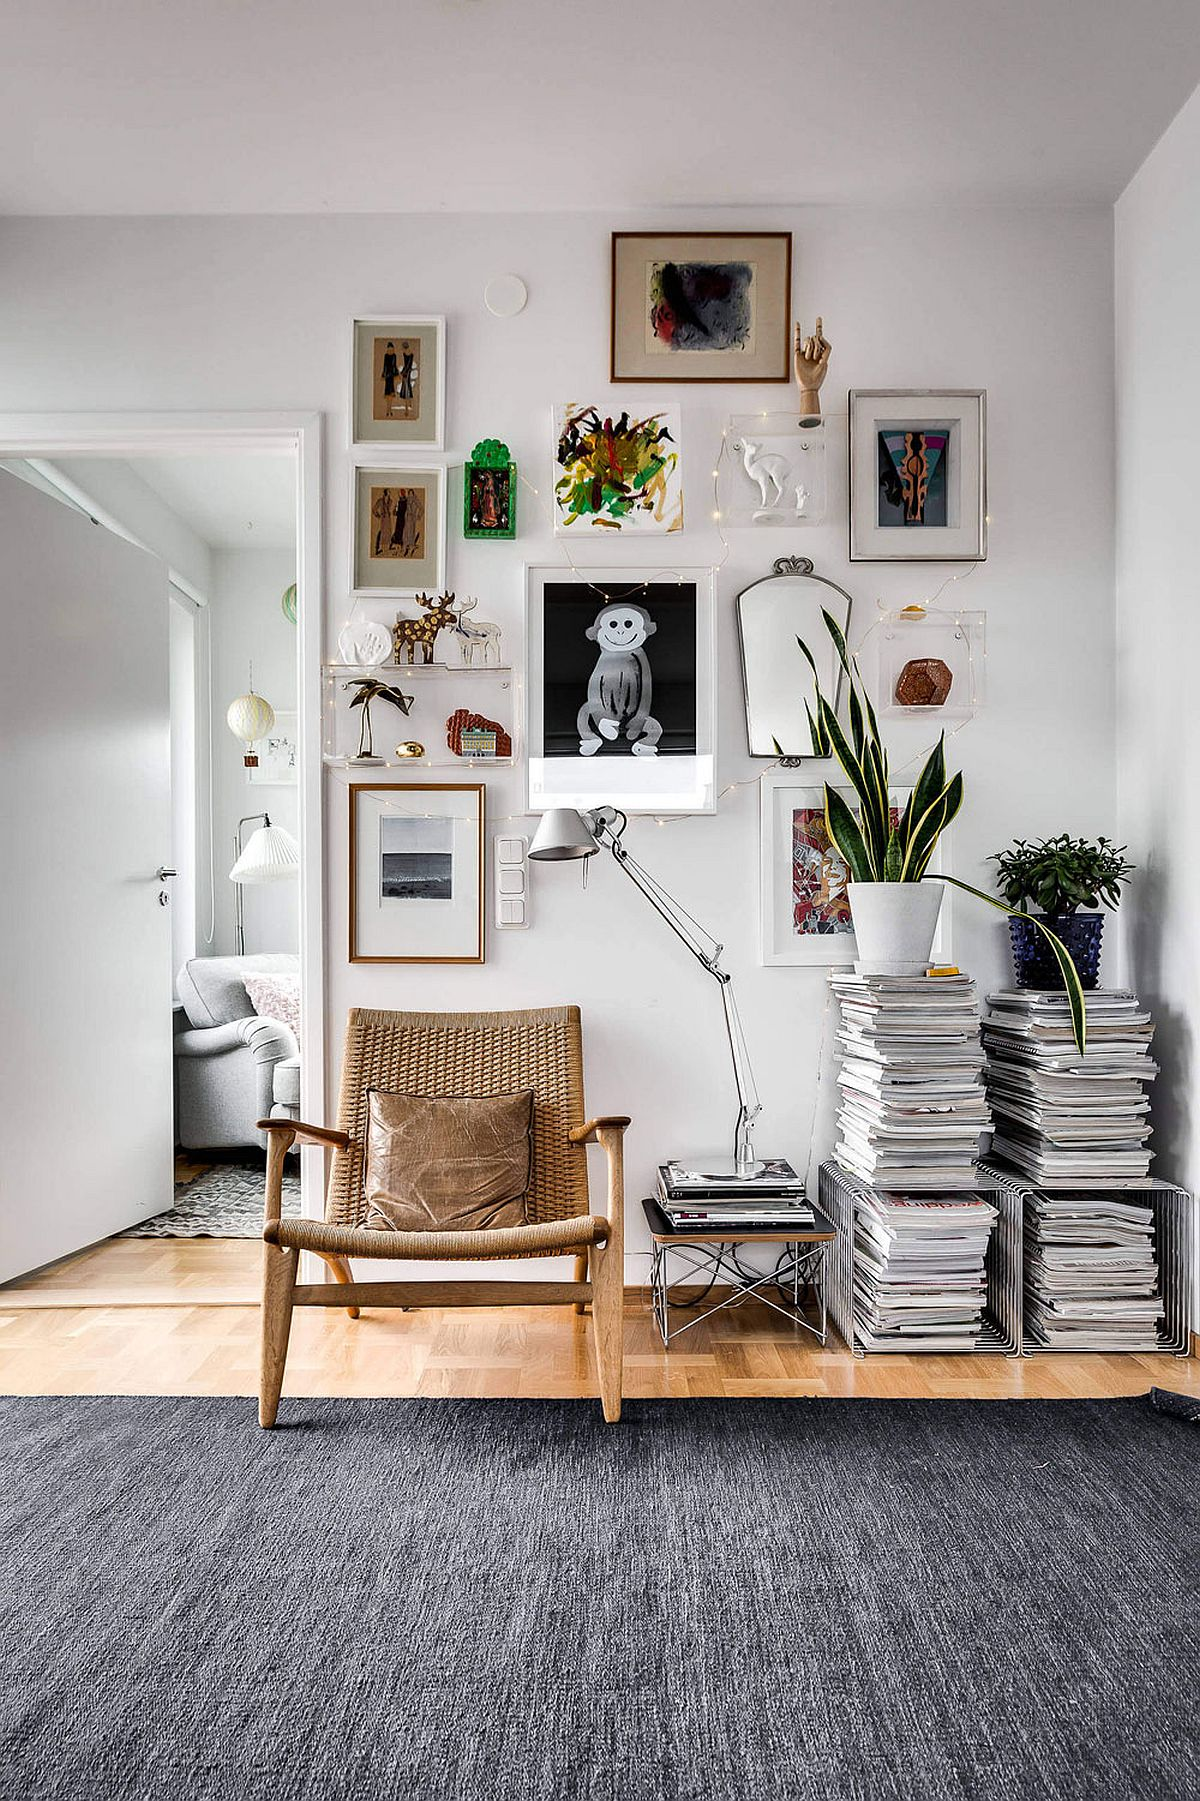 Nifty way to make use of the corner space with stacked books